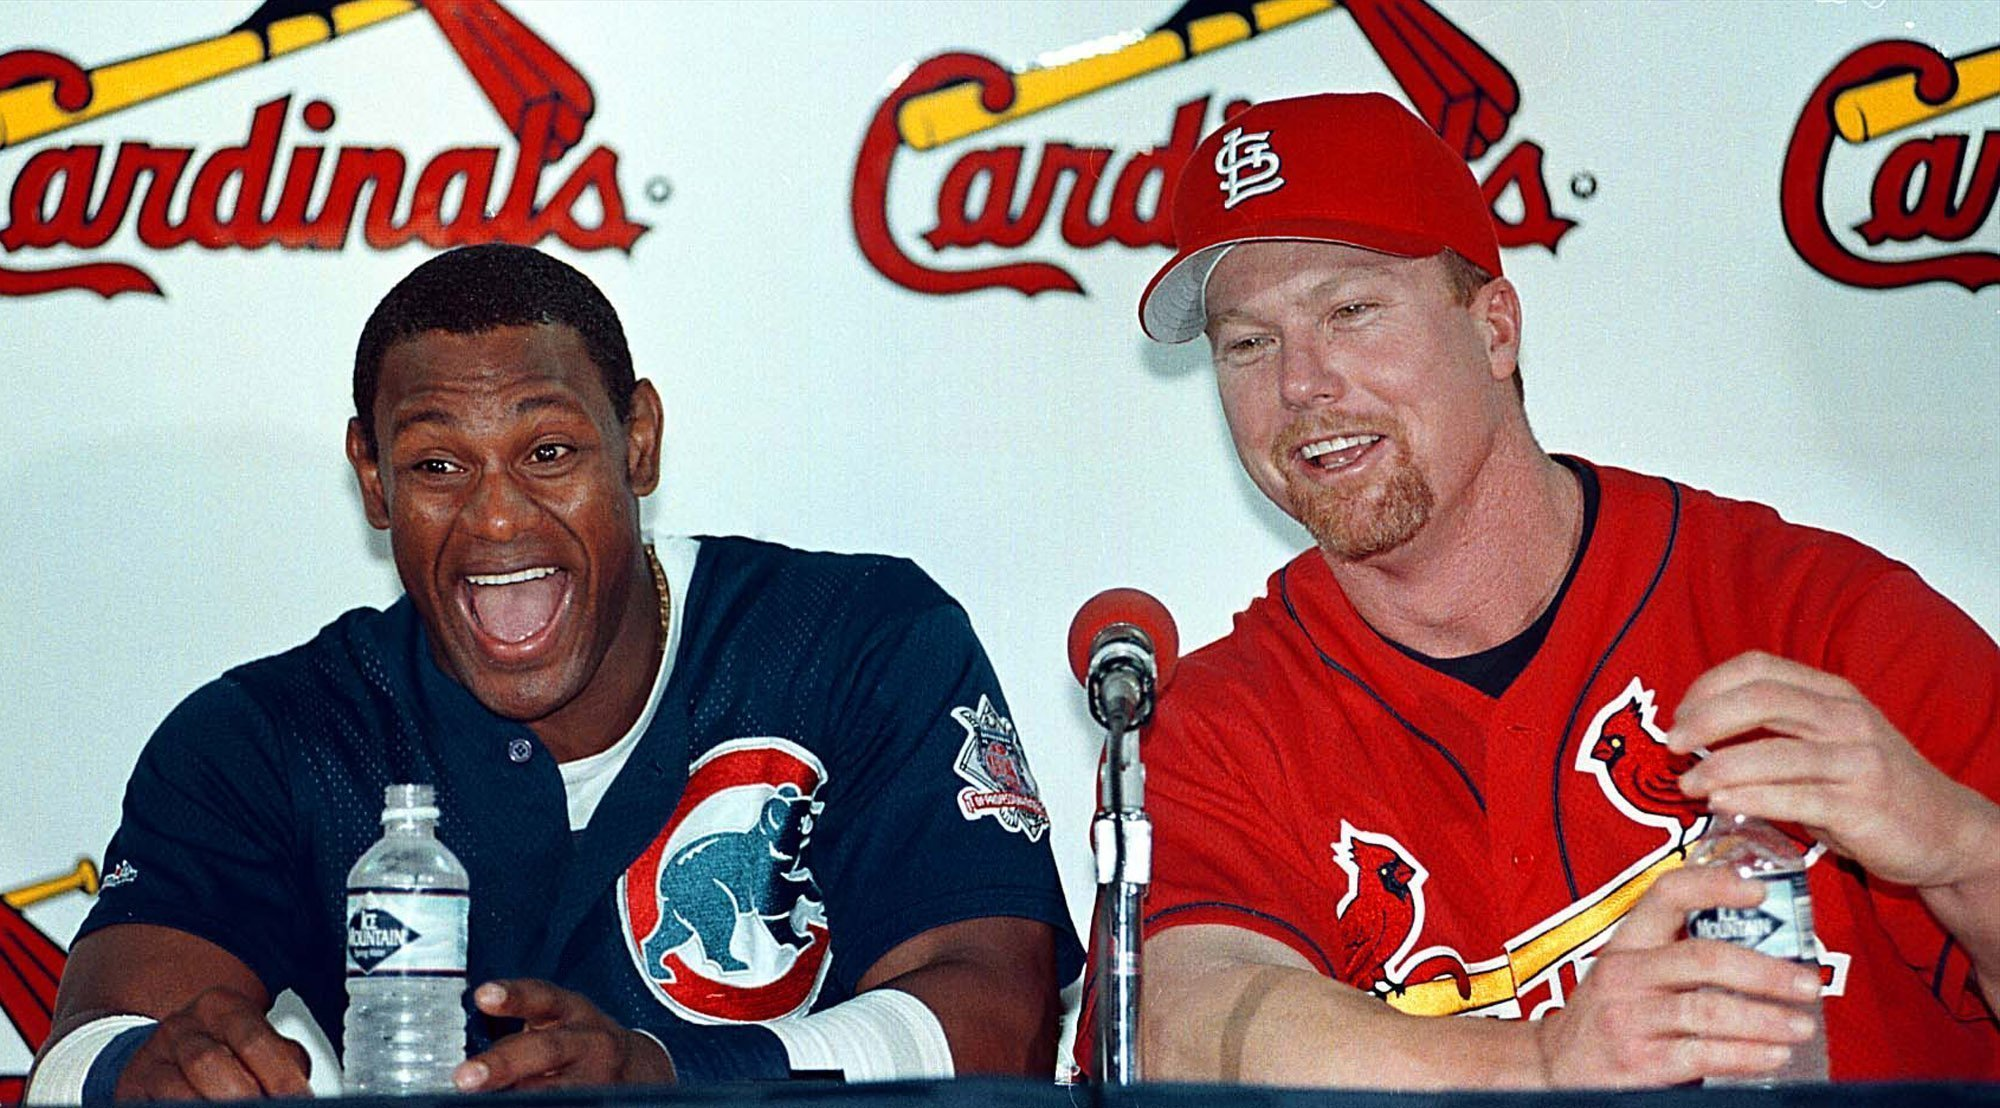 Sosa McGwire Home Run Chase We Should Have Known Better